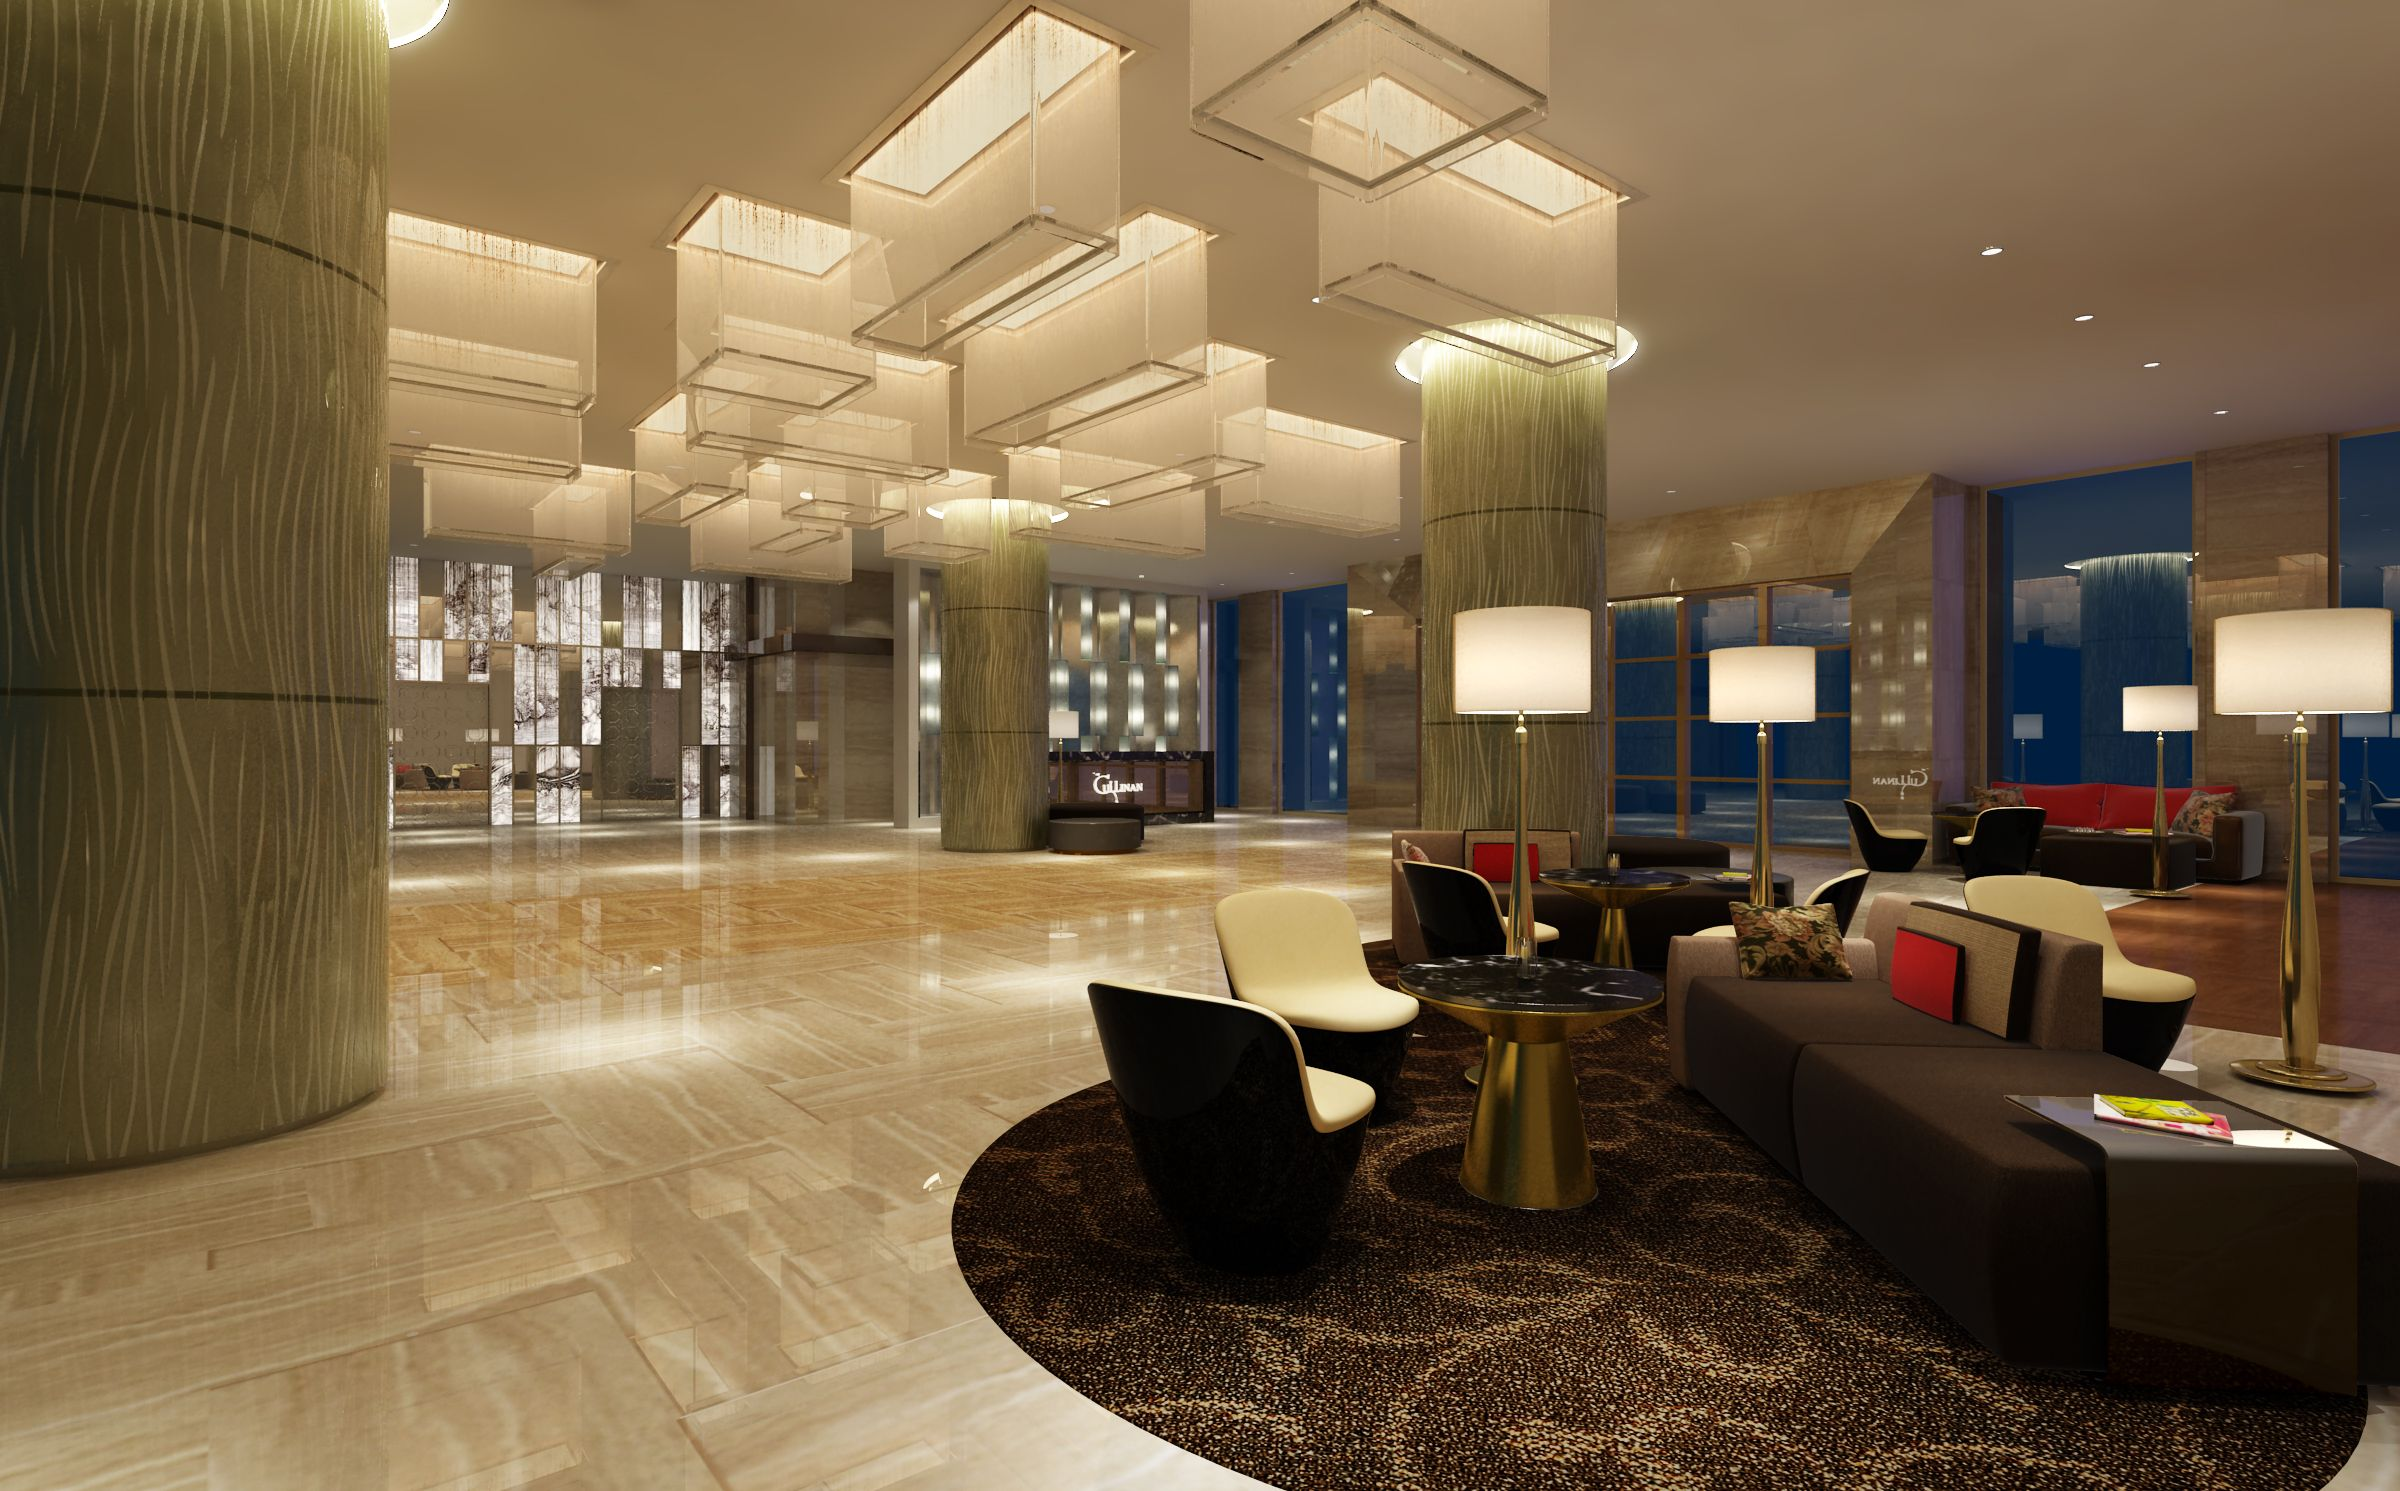 Office Foyer Meaning : Modern hotel lobby interior design architecture